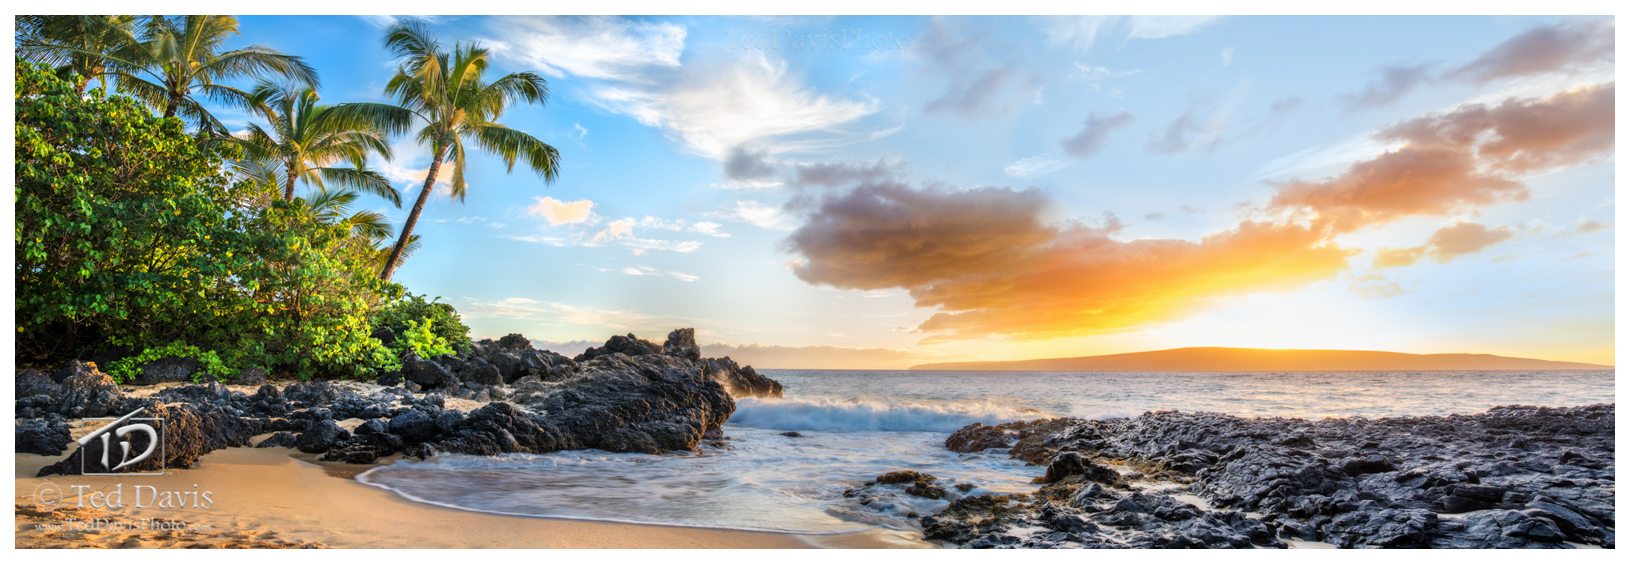 beech, secret, cove, maui, hawaii, sunset, beautiful, west, shore, sunrise, voice, vision, waves, volcanic, sun, trees, palm